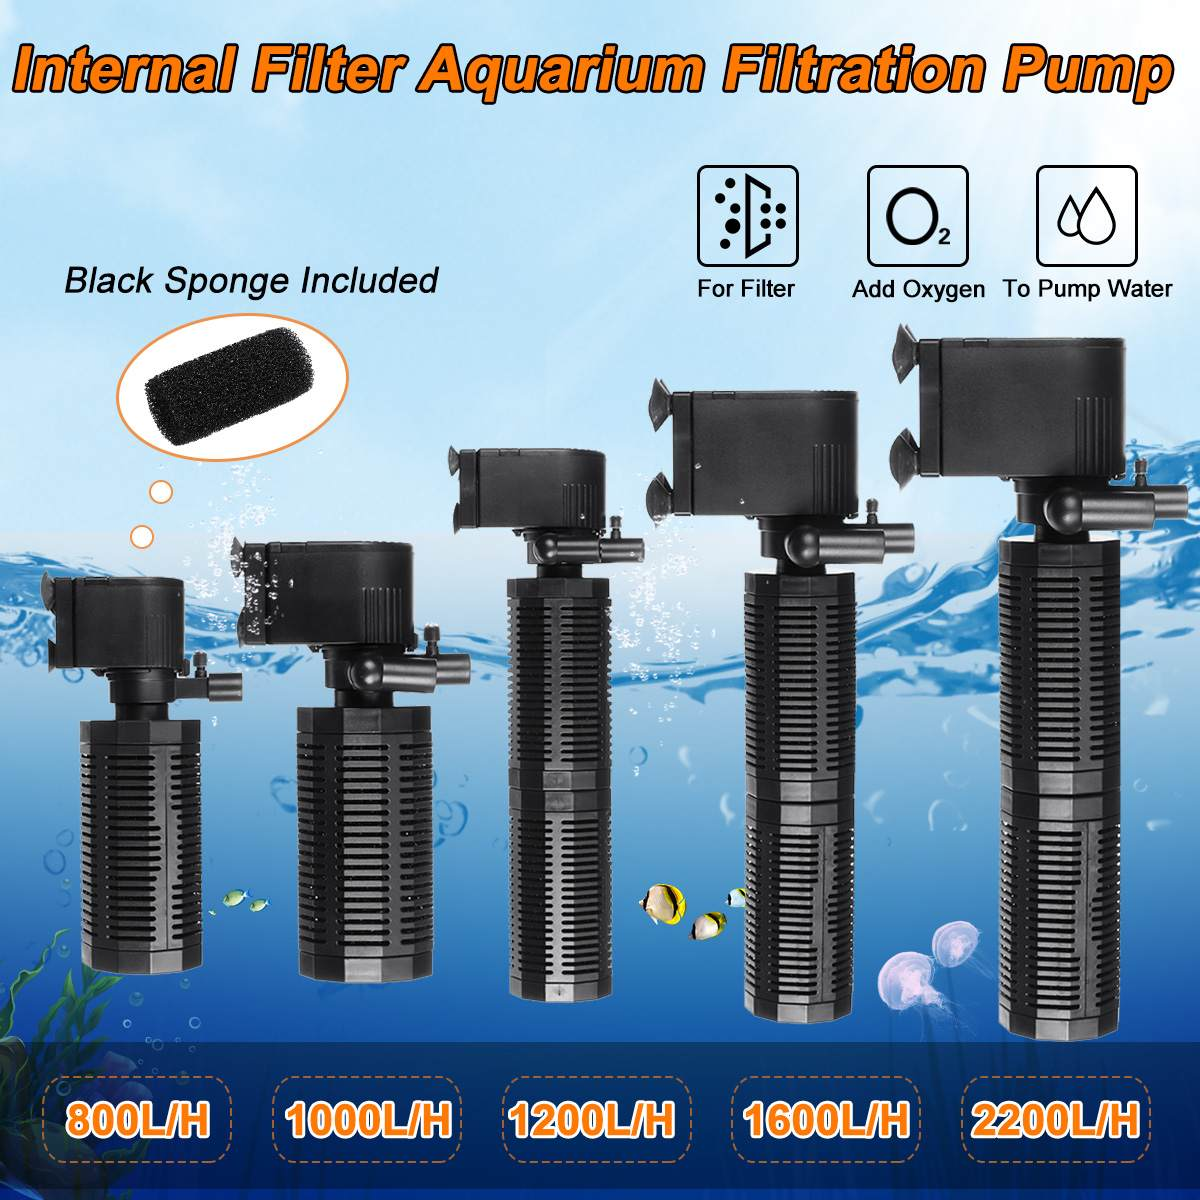 13W/18W/25W/30W/40W Biological Internal Filter Fish Tank Aquarium Filtration Pump 800-2200l/h Submersible Aquarium Water Pump